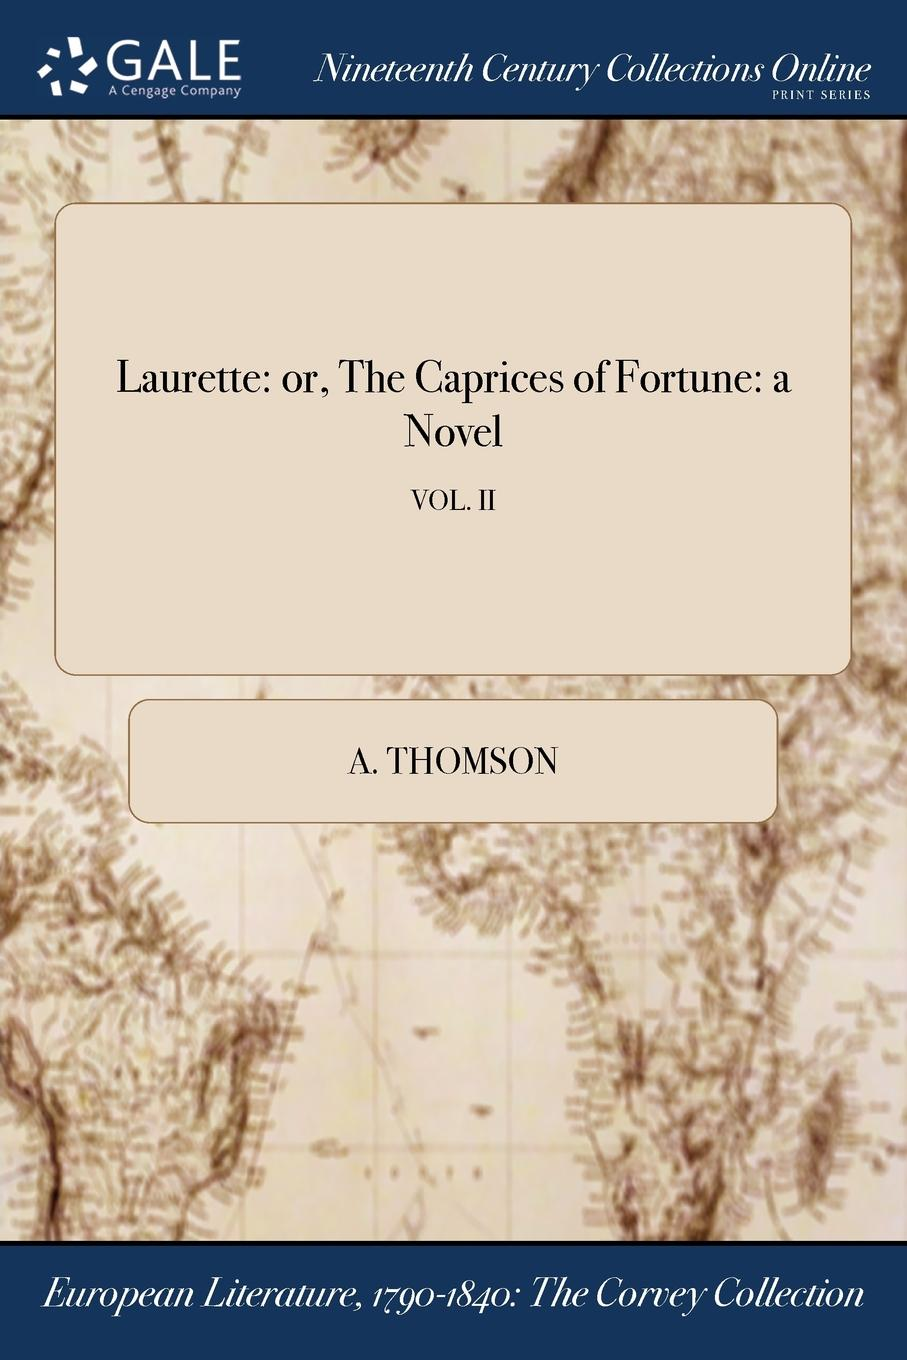 A. Thomson Laurette. or, The Caprices of Fortune: a Novel; VOL. II